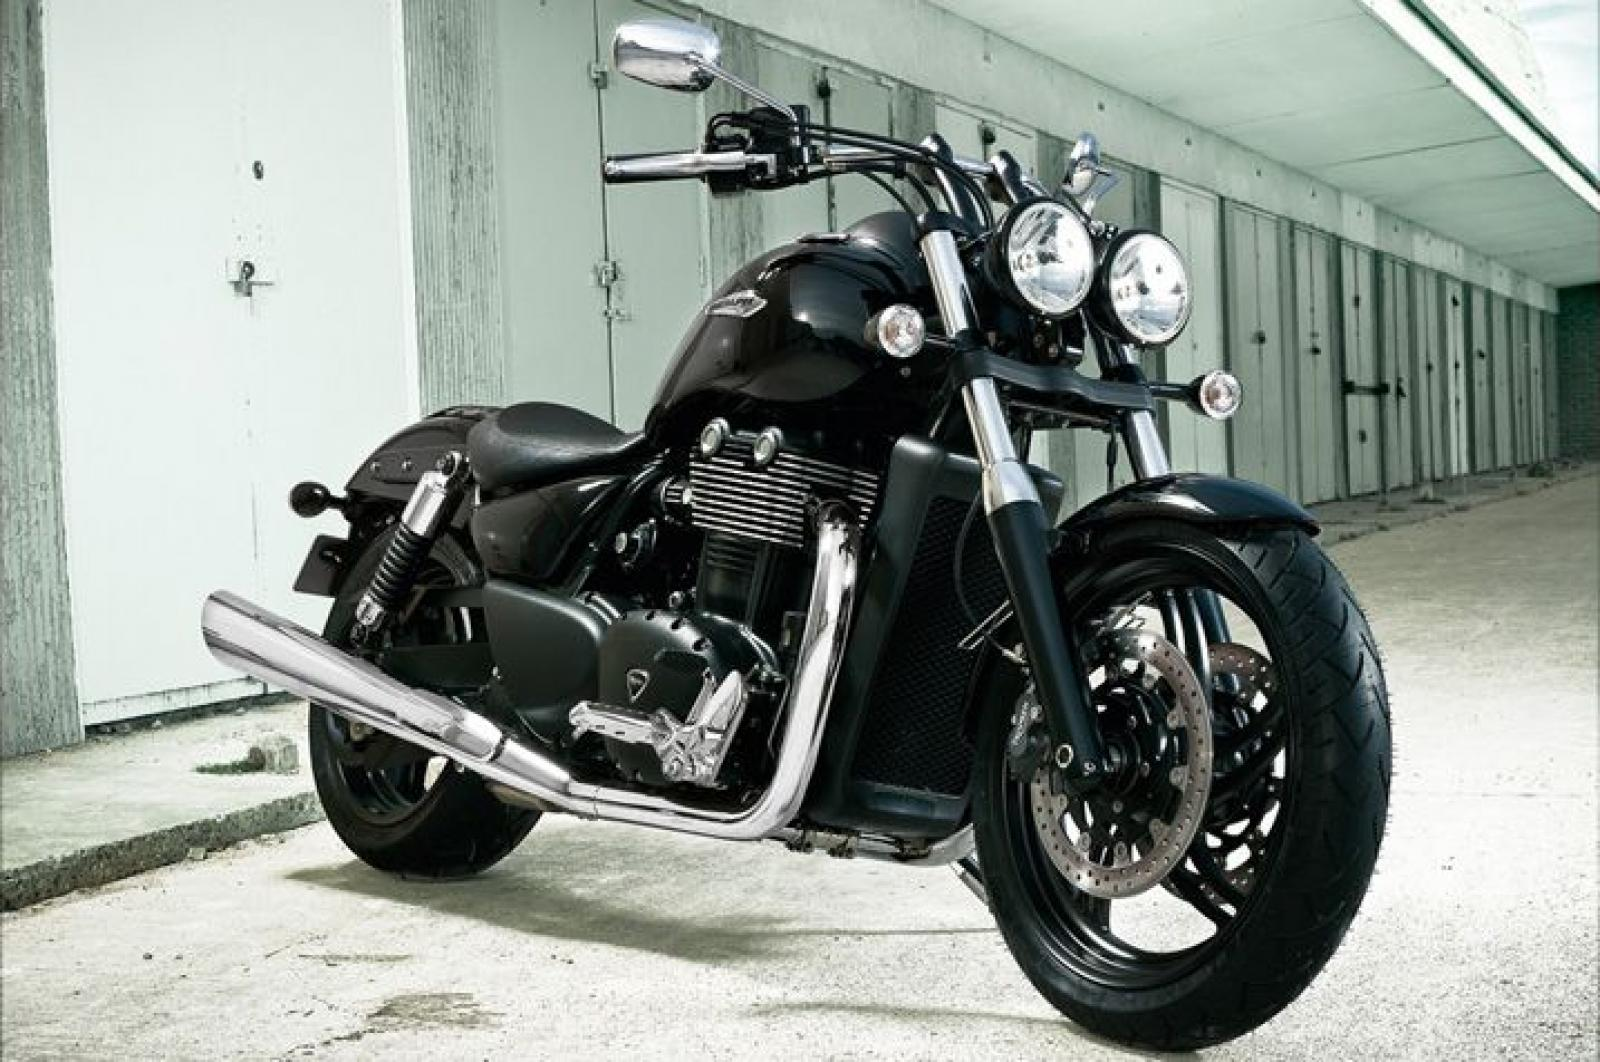 2013 triumph thunderbird storm moto zombdrive com. Black Bedroom Furniture Sets. Home Design Ideas